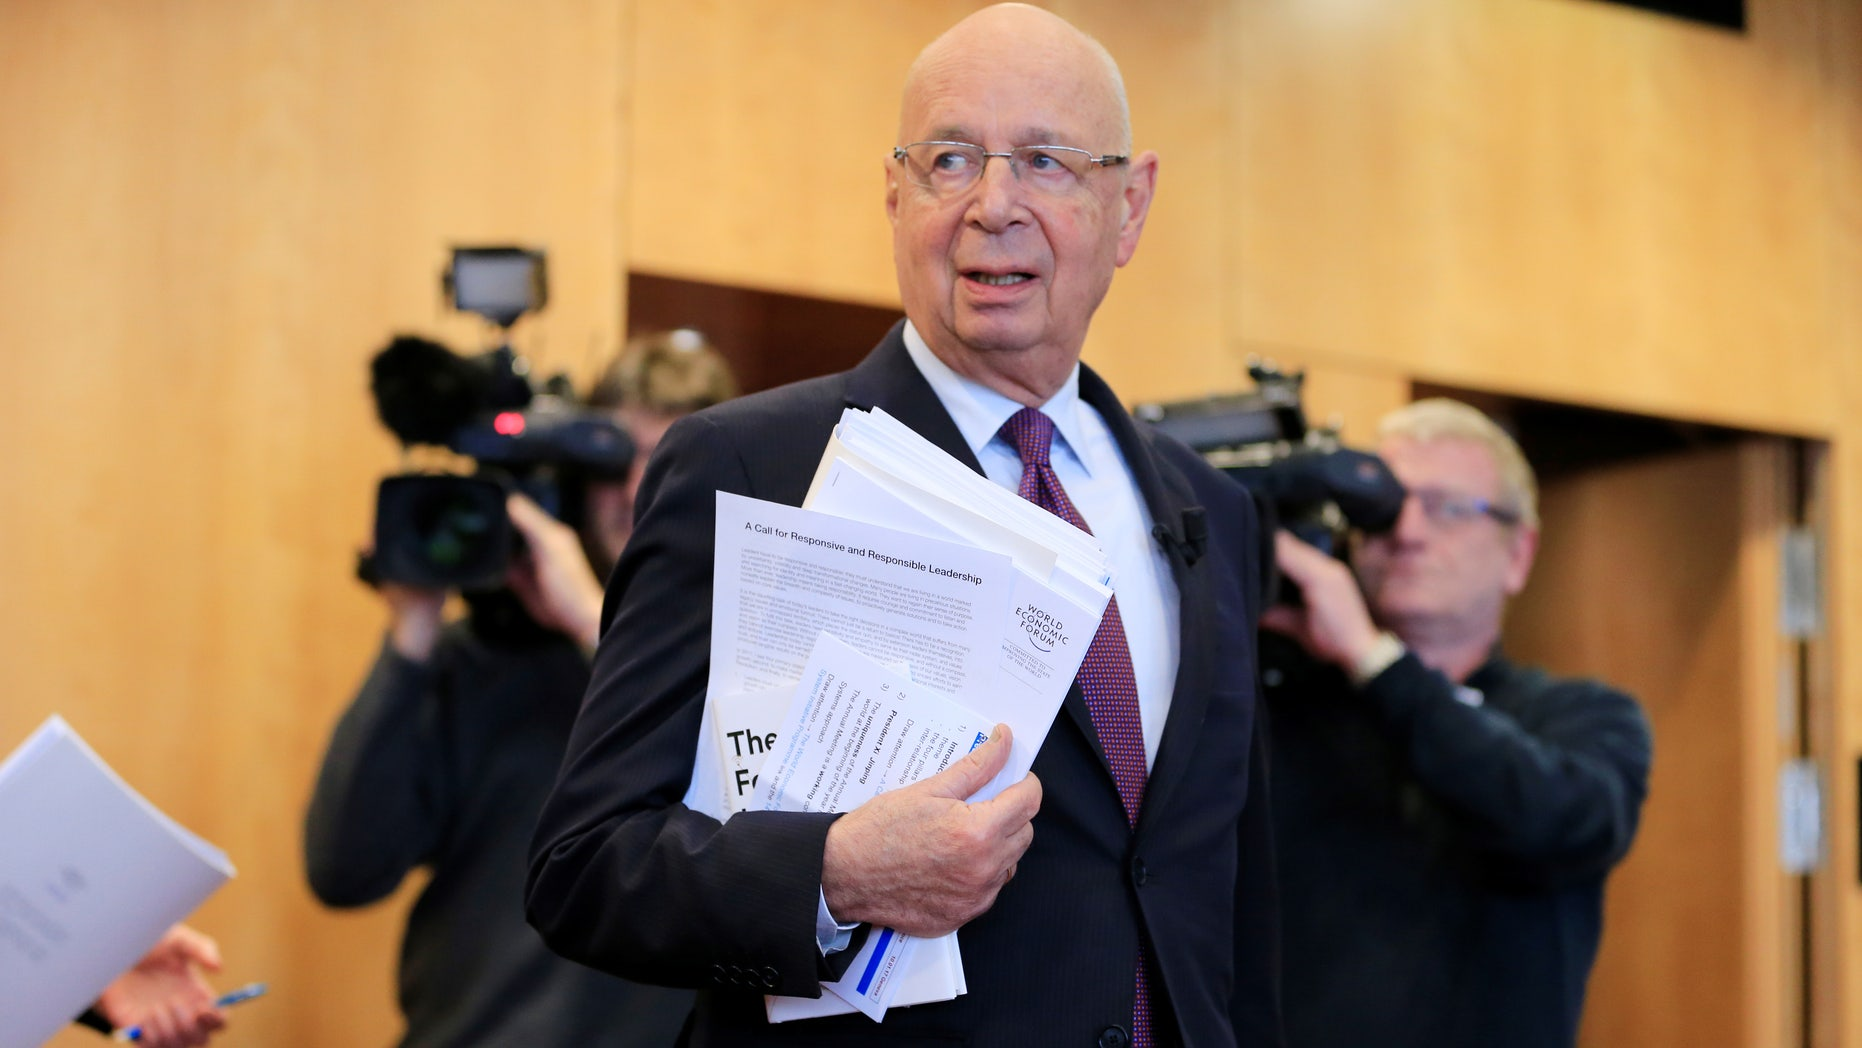 World Economic Forum (WEF) Executive Chairman and founder Klaus Schwab arrives at a news conference in Cologny, near Geneva, Switzerland January 10, 2017.